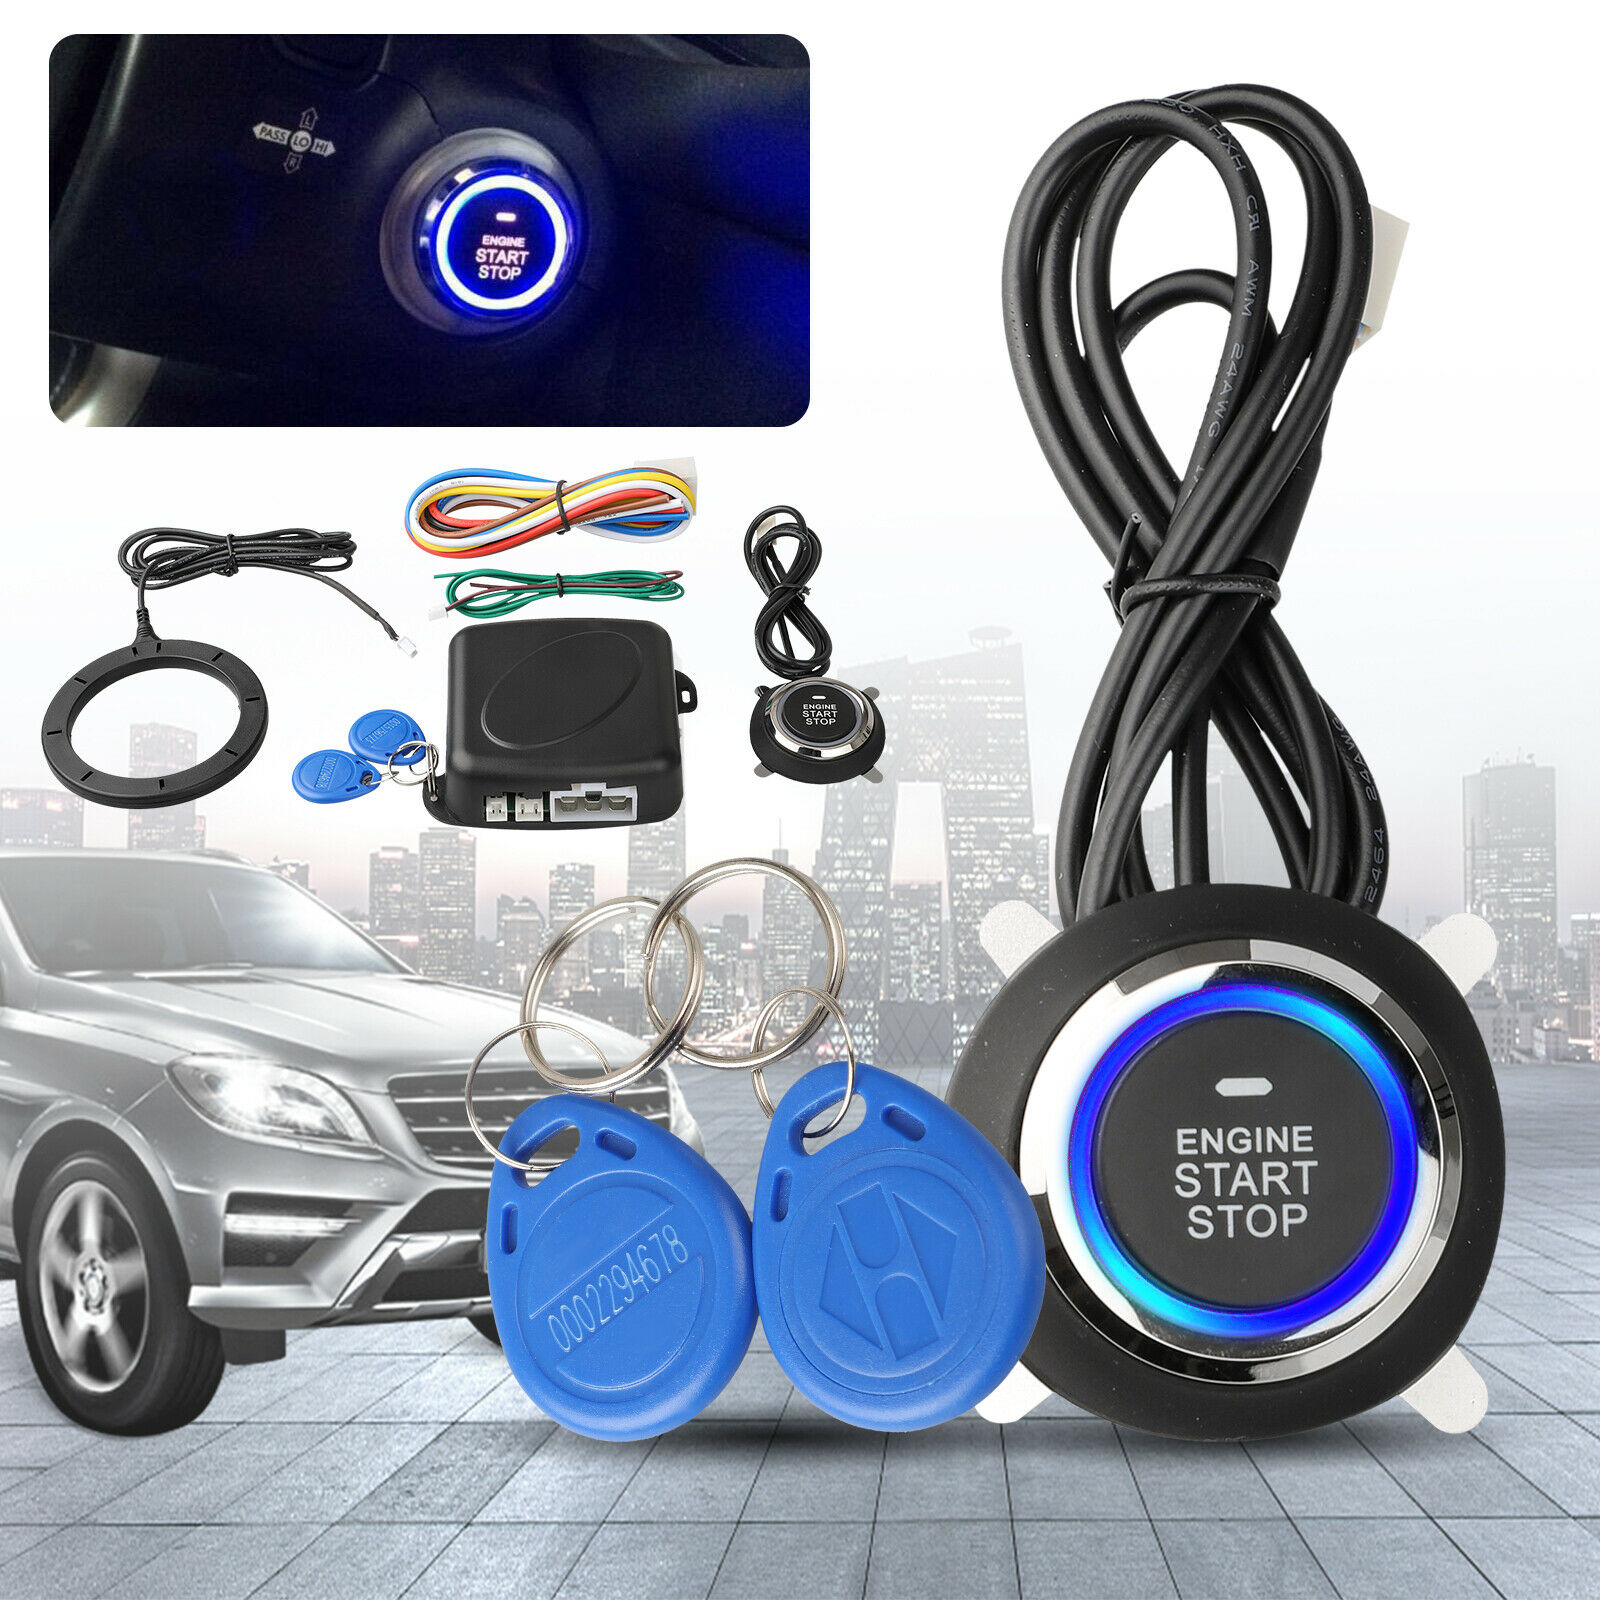 Auto Ignition Switch 12V RFID Push Start Button Car Entry Engine Start Keyless Start Stop Button Keyless Entry Starter Kit title=